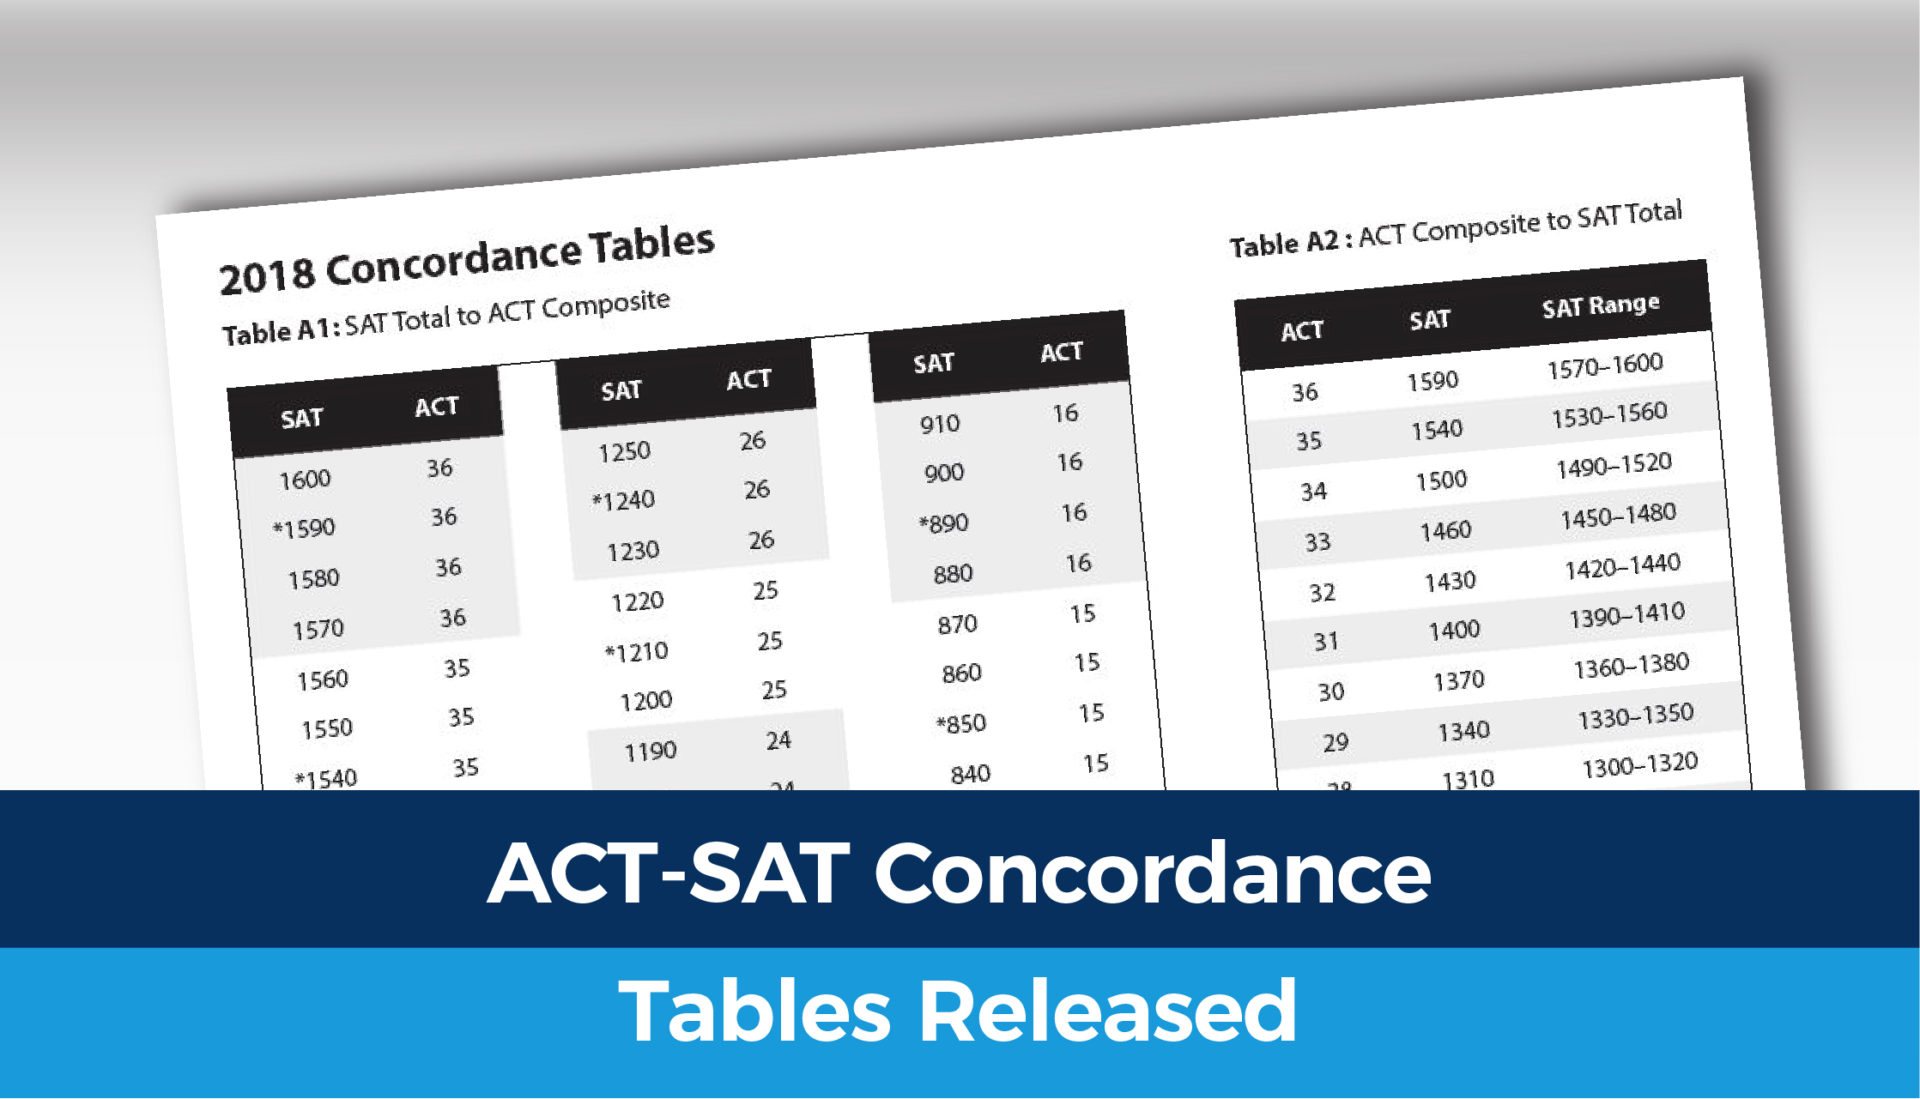 ACT-SAT Concordance Tables Released